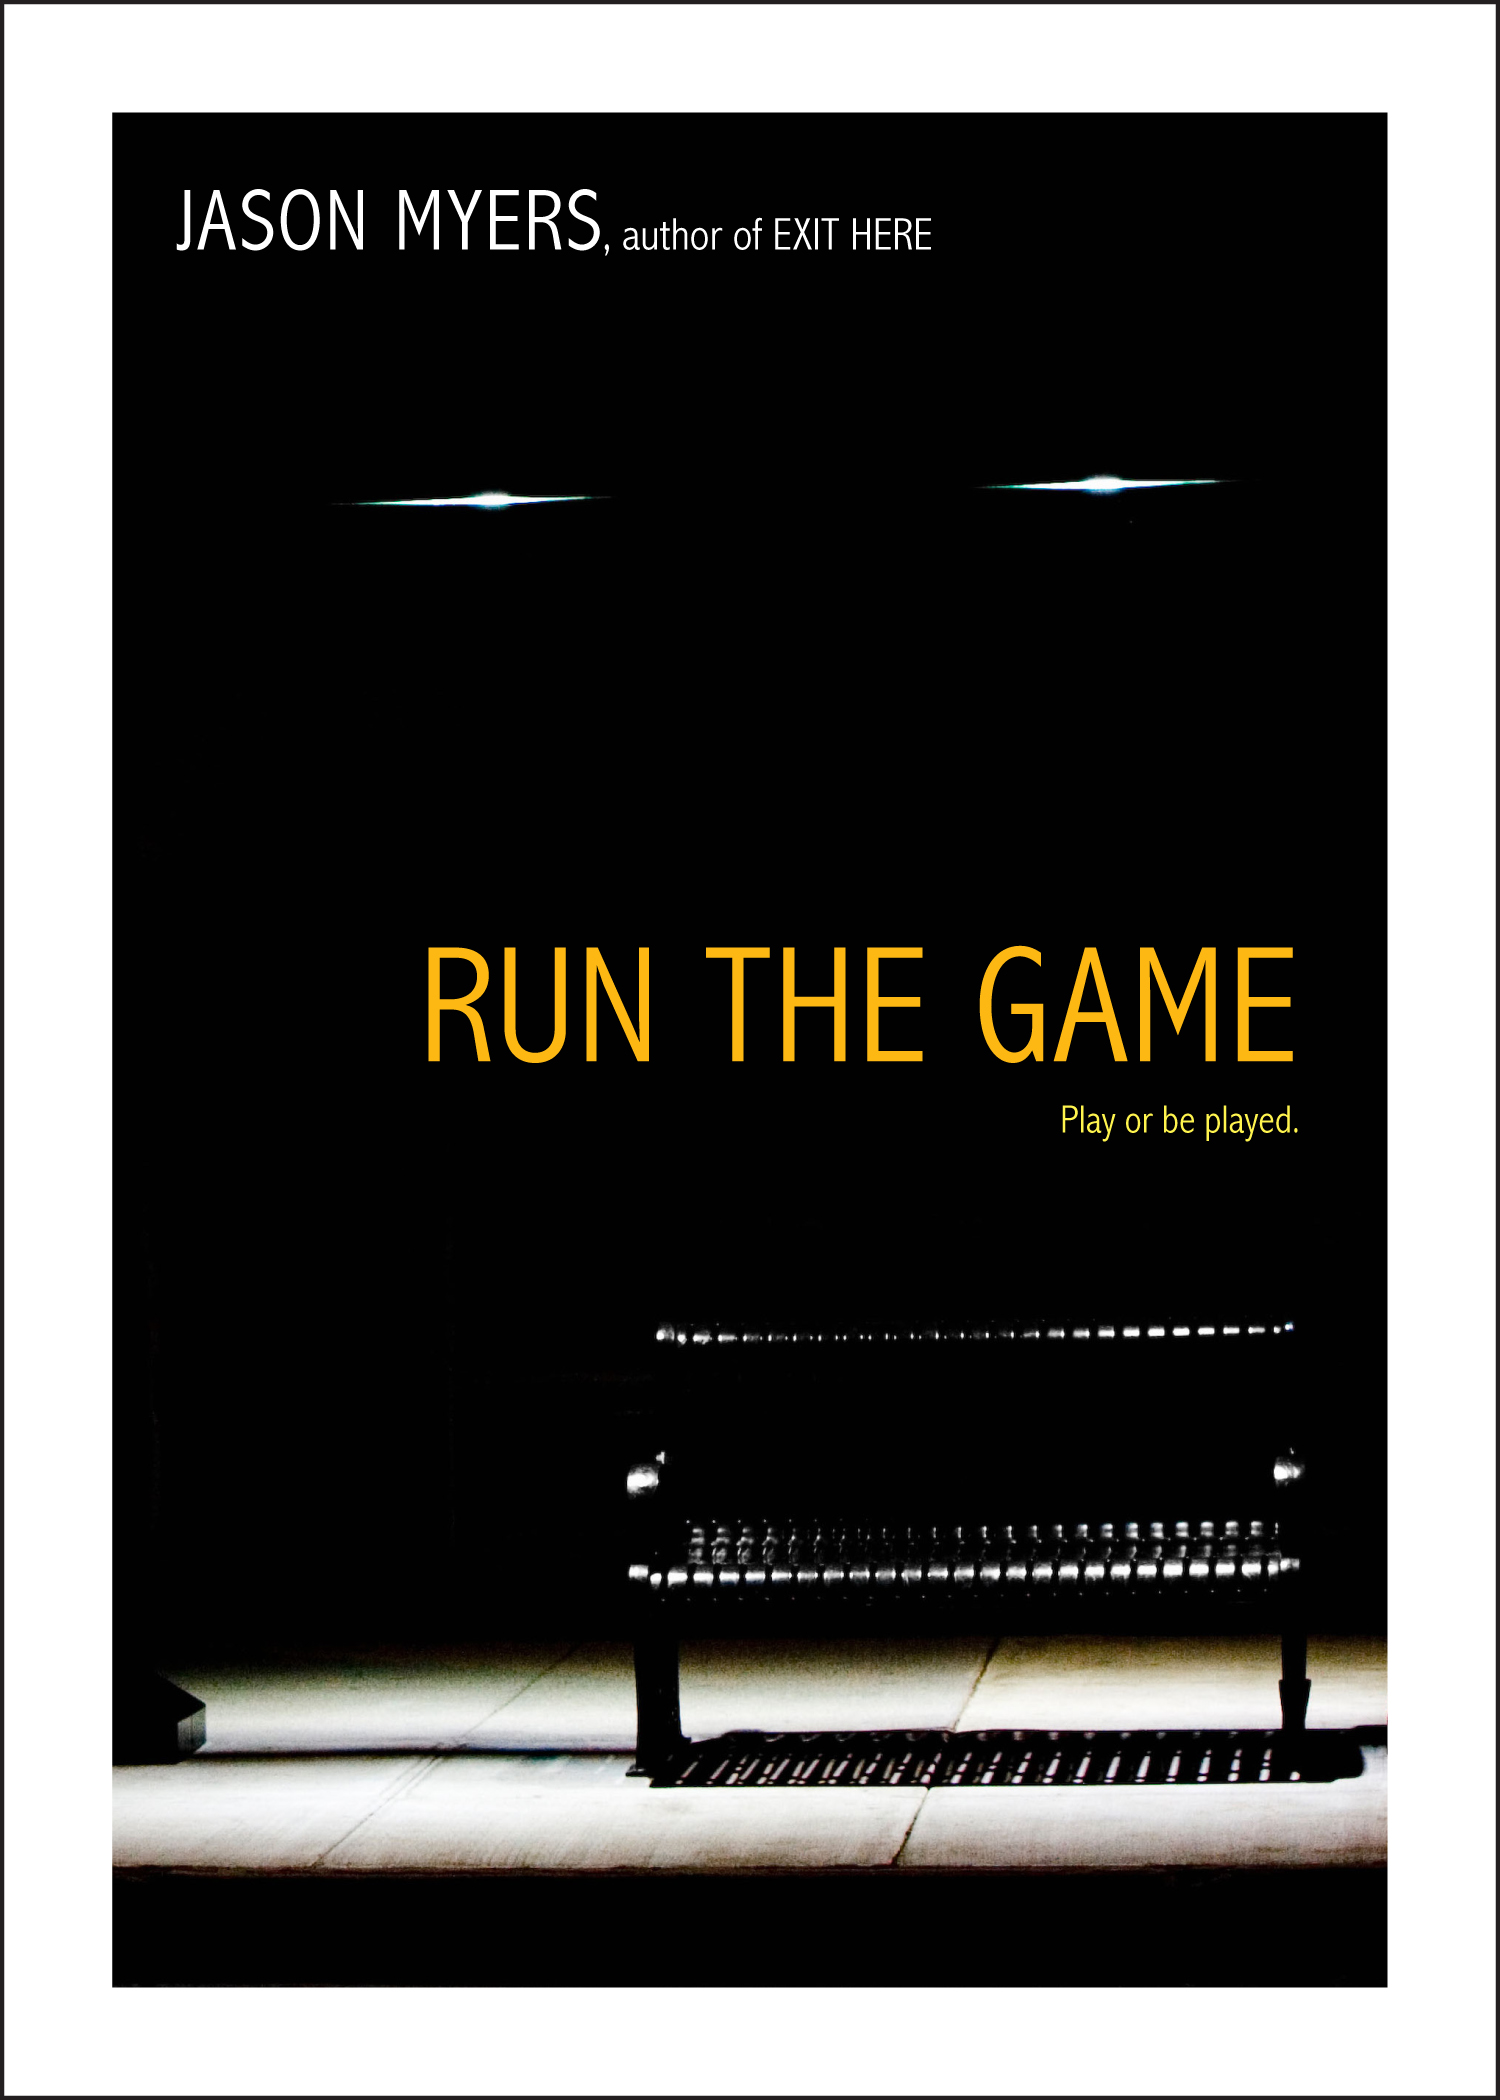 Book Cover Image (jpg): Run the Game